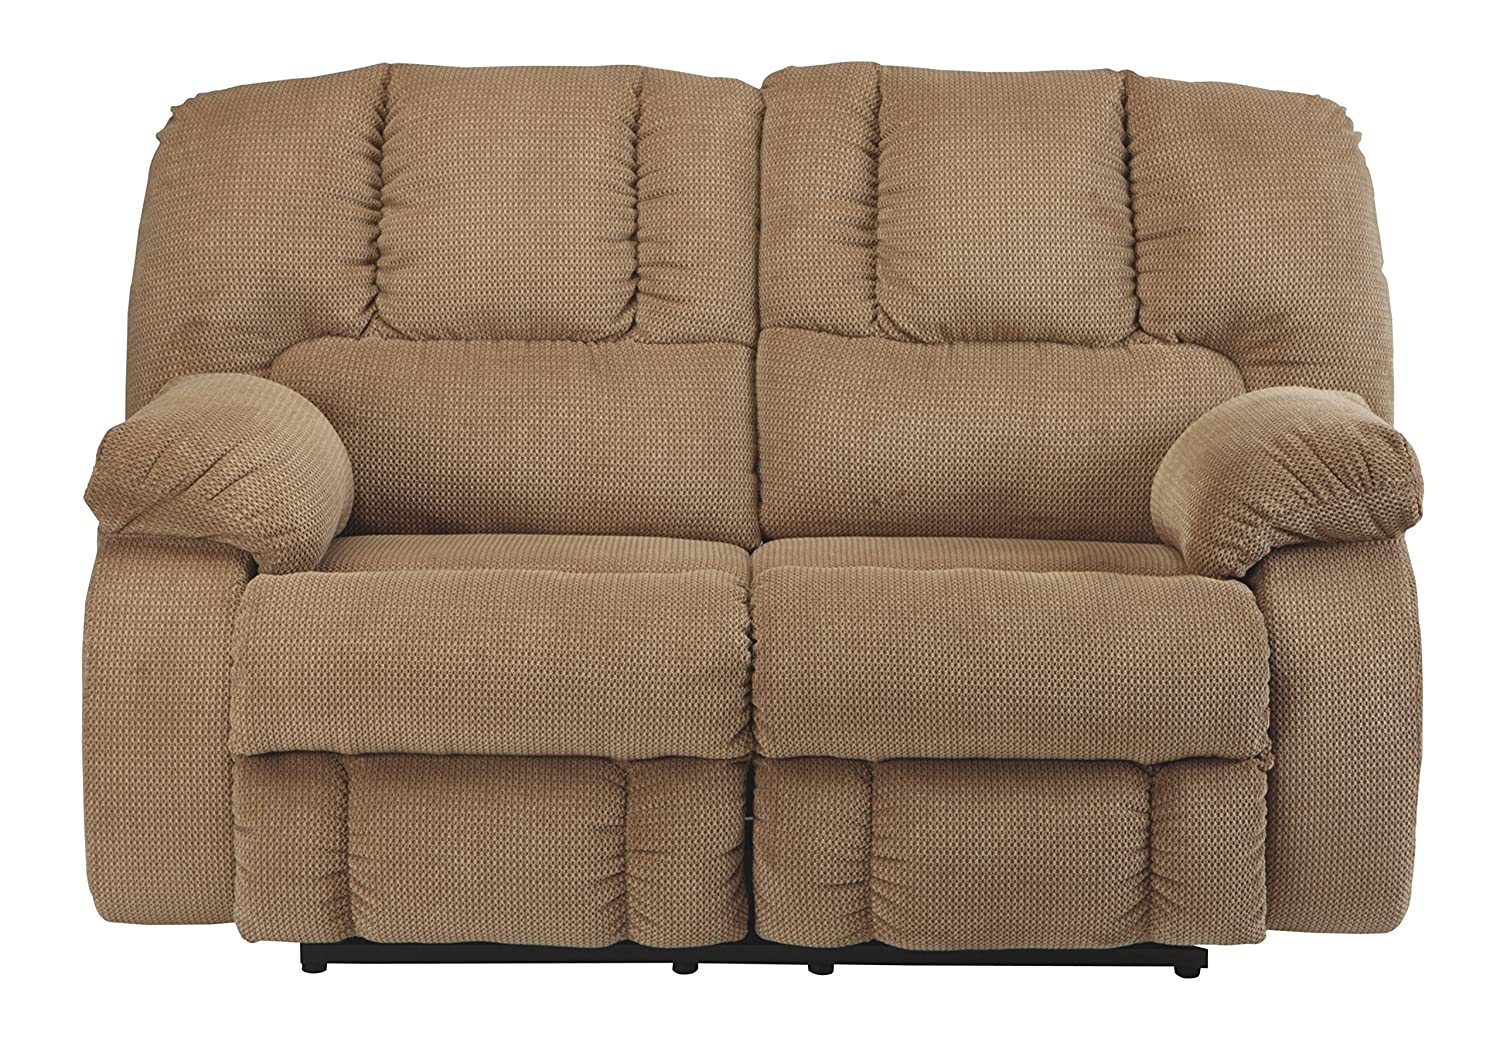 Surprising Amazon Com Benchcraft 3860286 The Roan Reclining Loveseat Alphanode Cool Chair Designs And Ideas Alphanodeonline